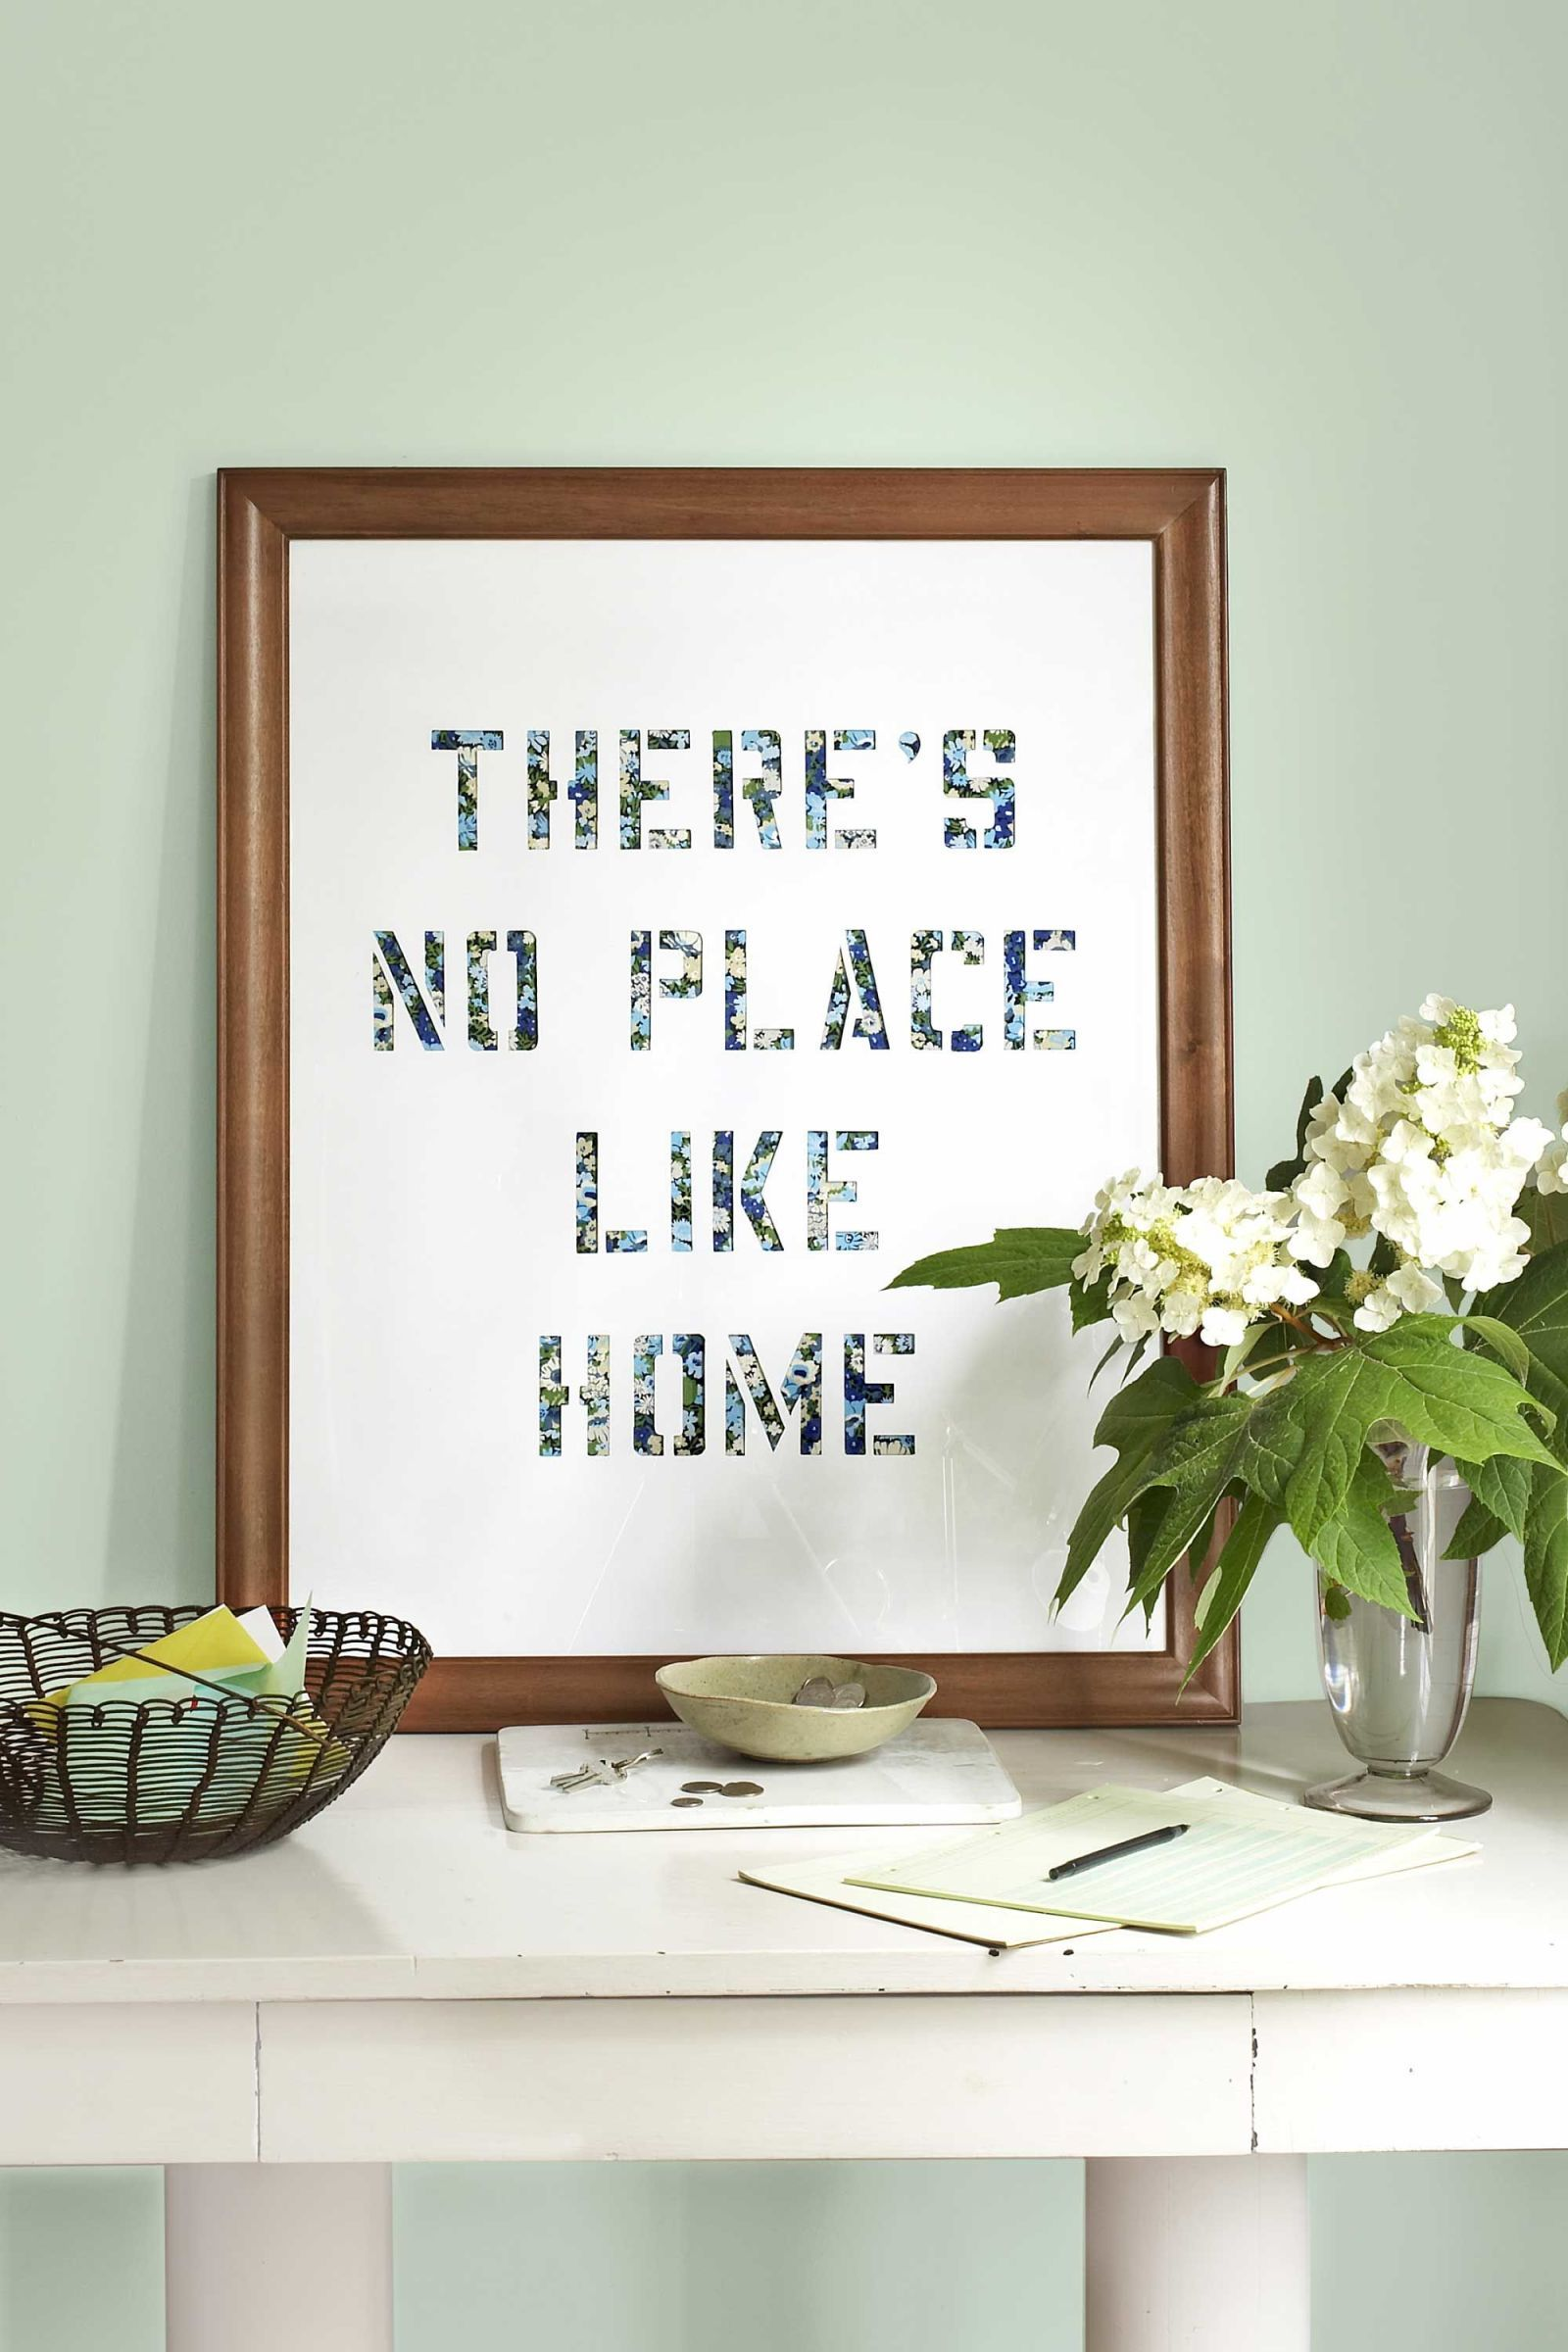 45+ Crafty Ideas for Home Decor You Can Make Yourself | Crafty ...